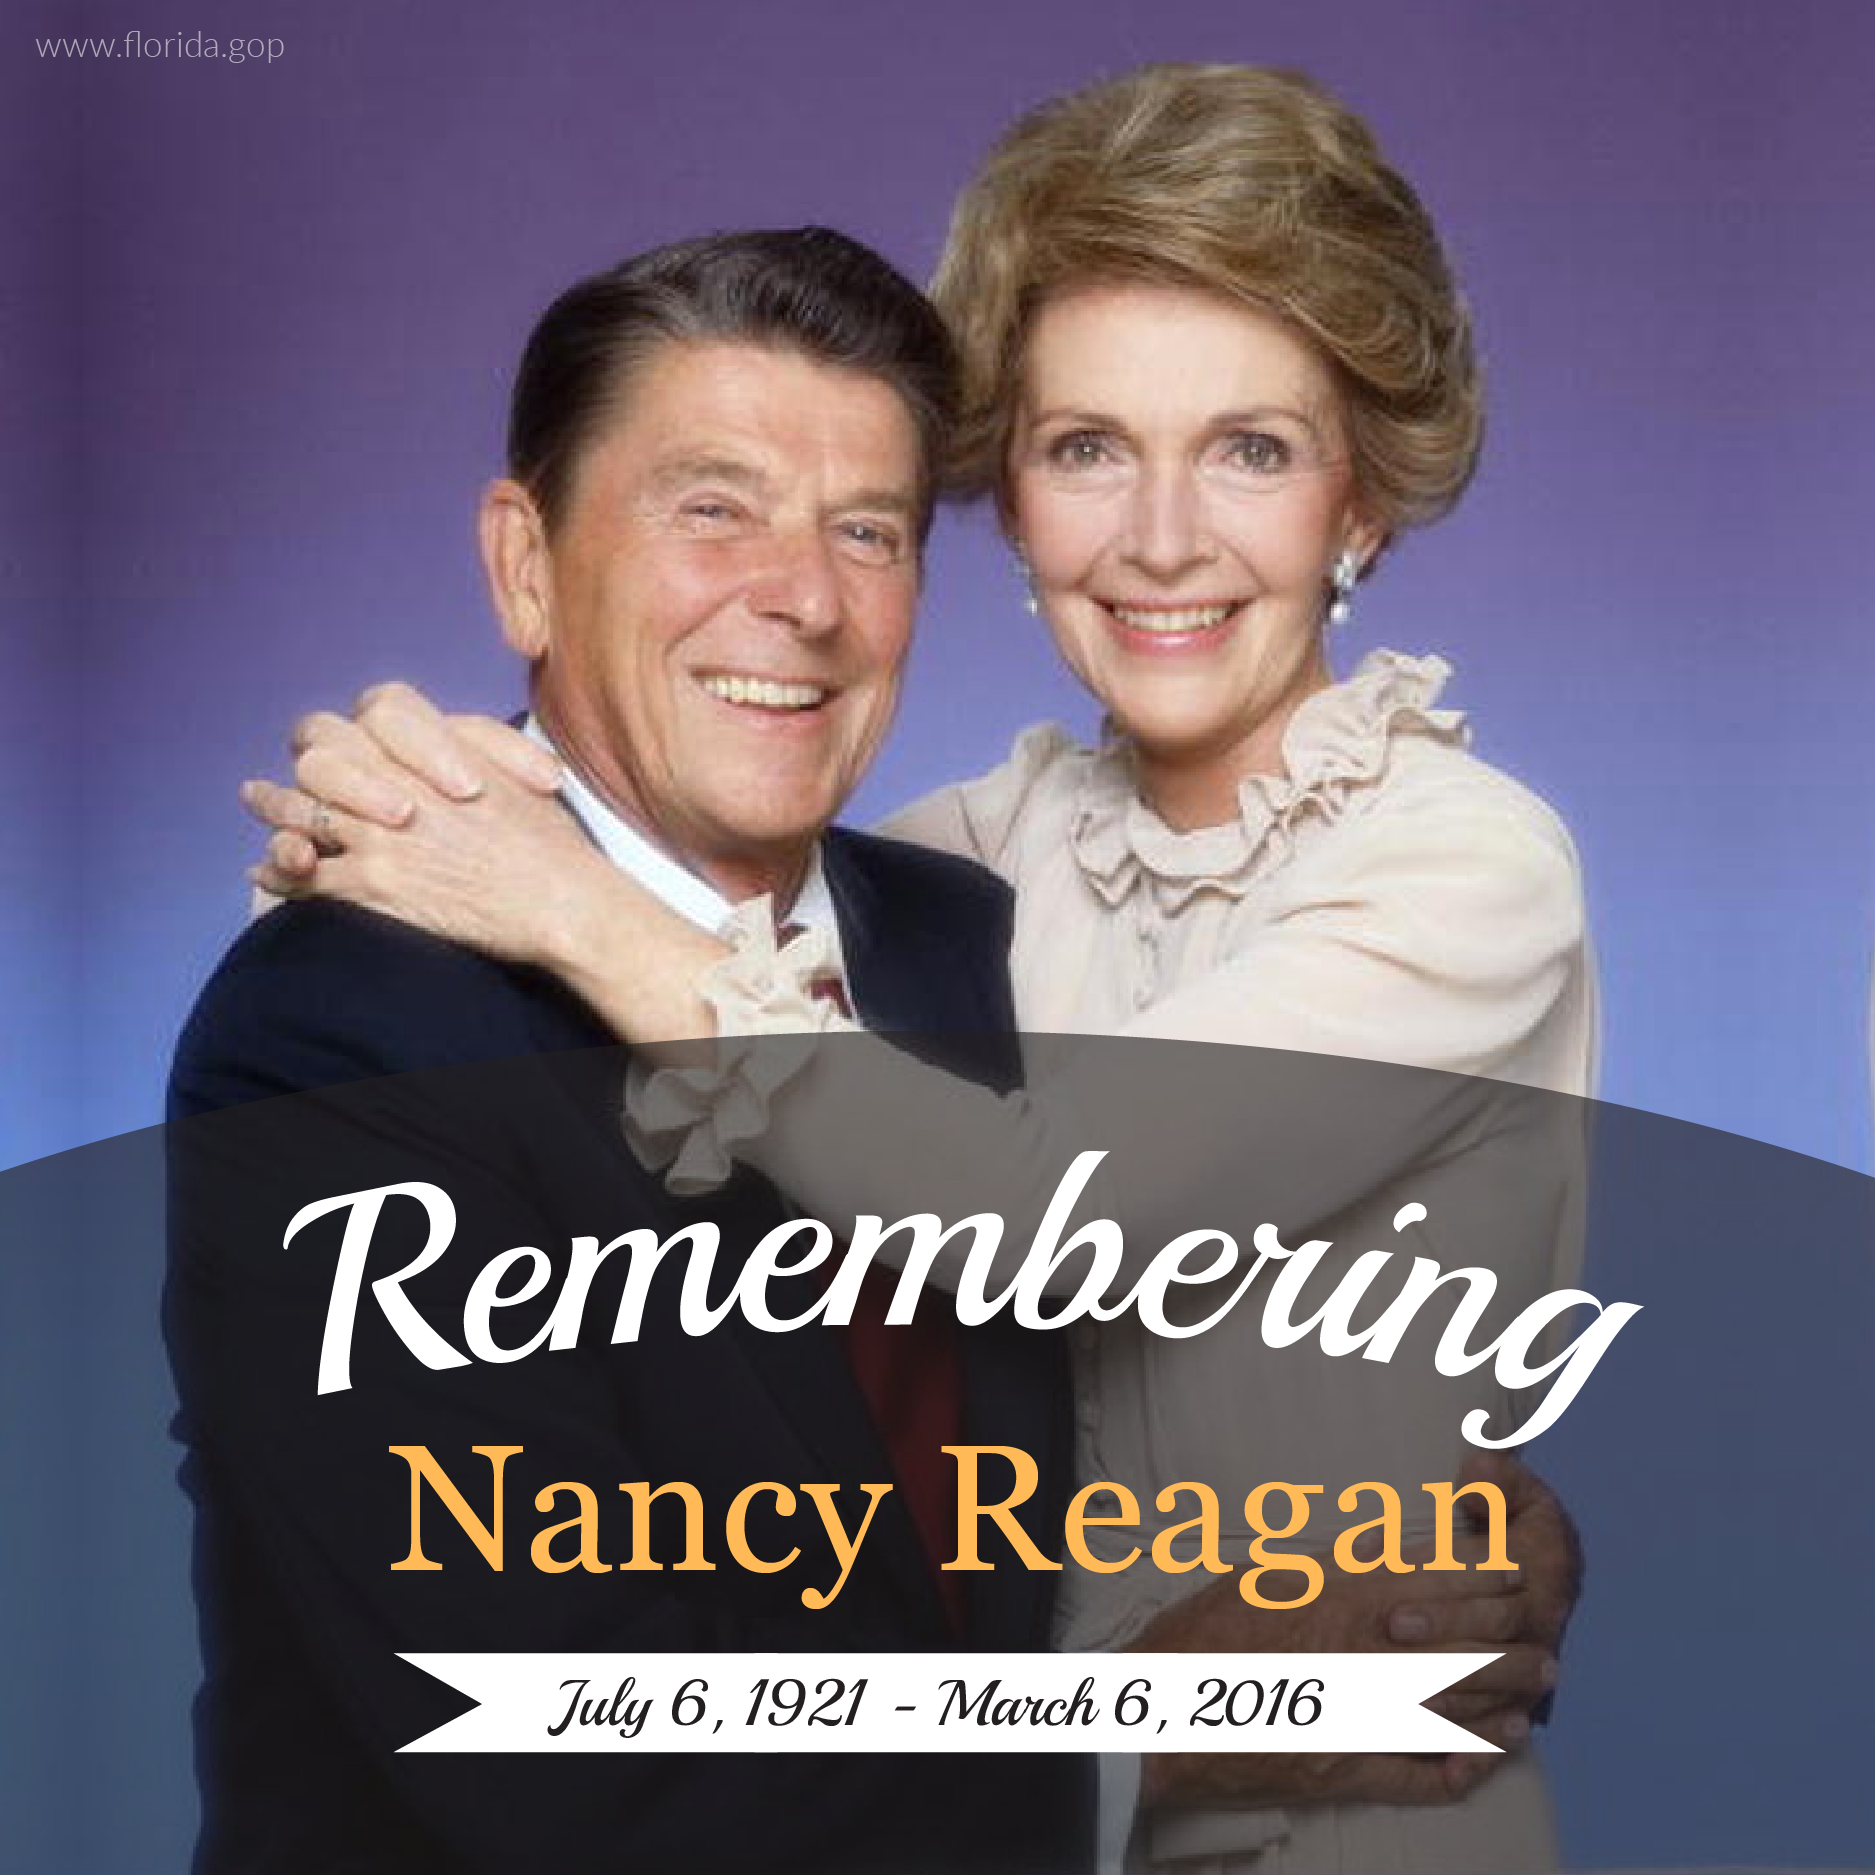 RIP Nancy Reagan